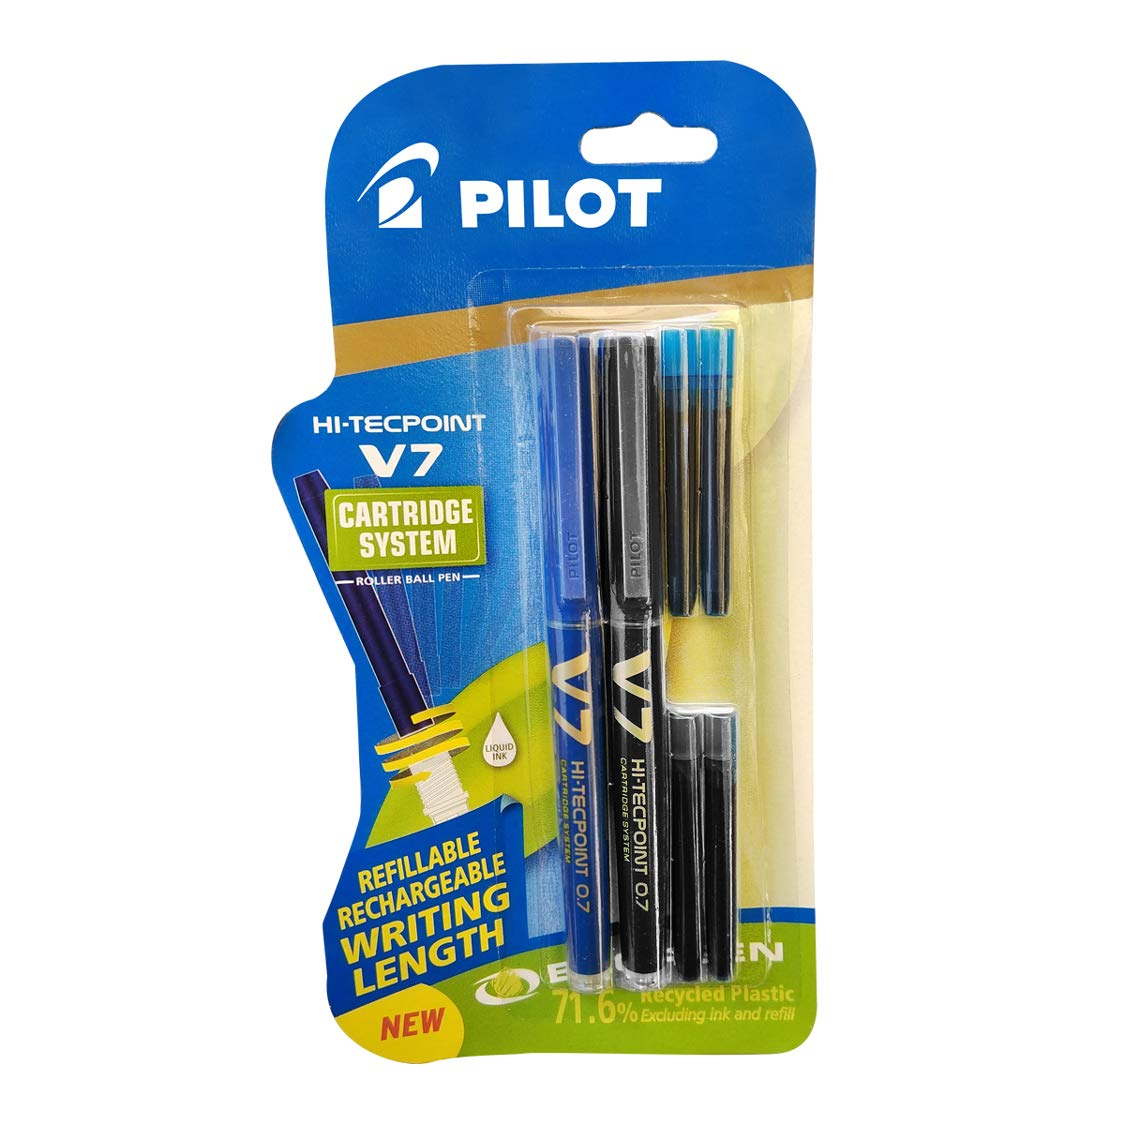 Pilot V7 Hi-tecpoint Pen with cartridge system - 1 Blue, 1 Black Pen, 2 Blue cartridges, 2 Black cartridges product image